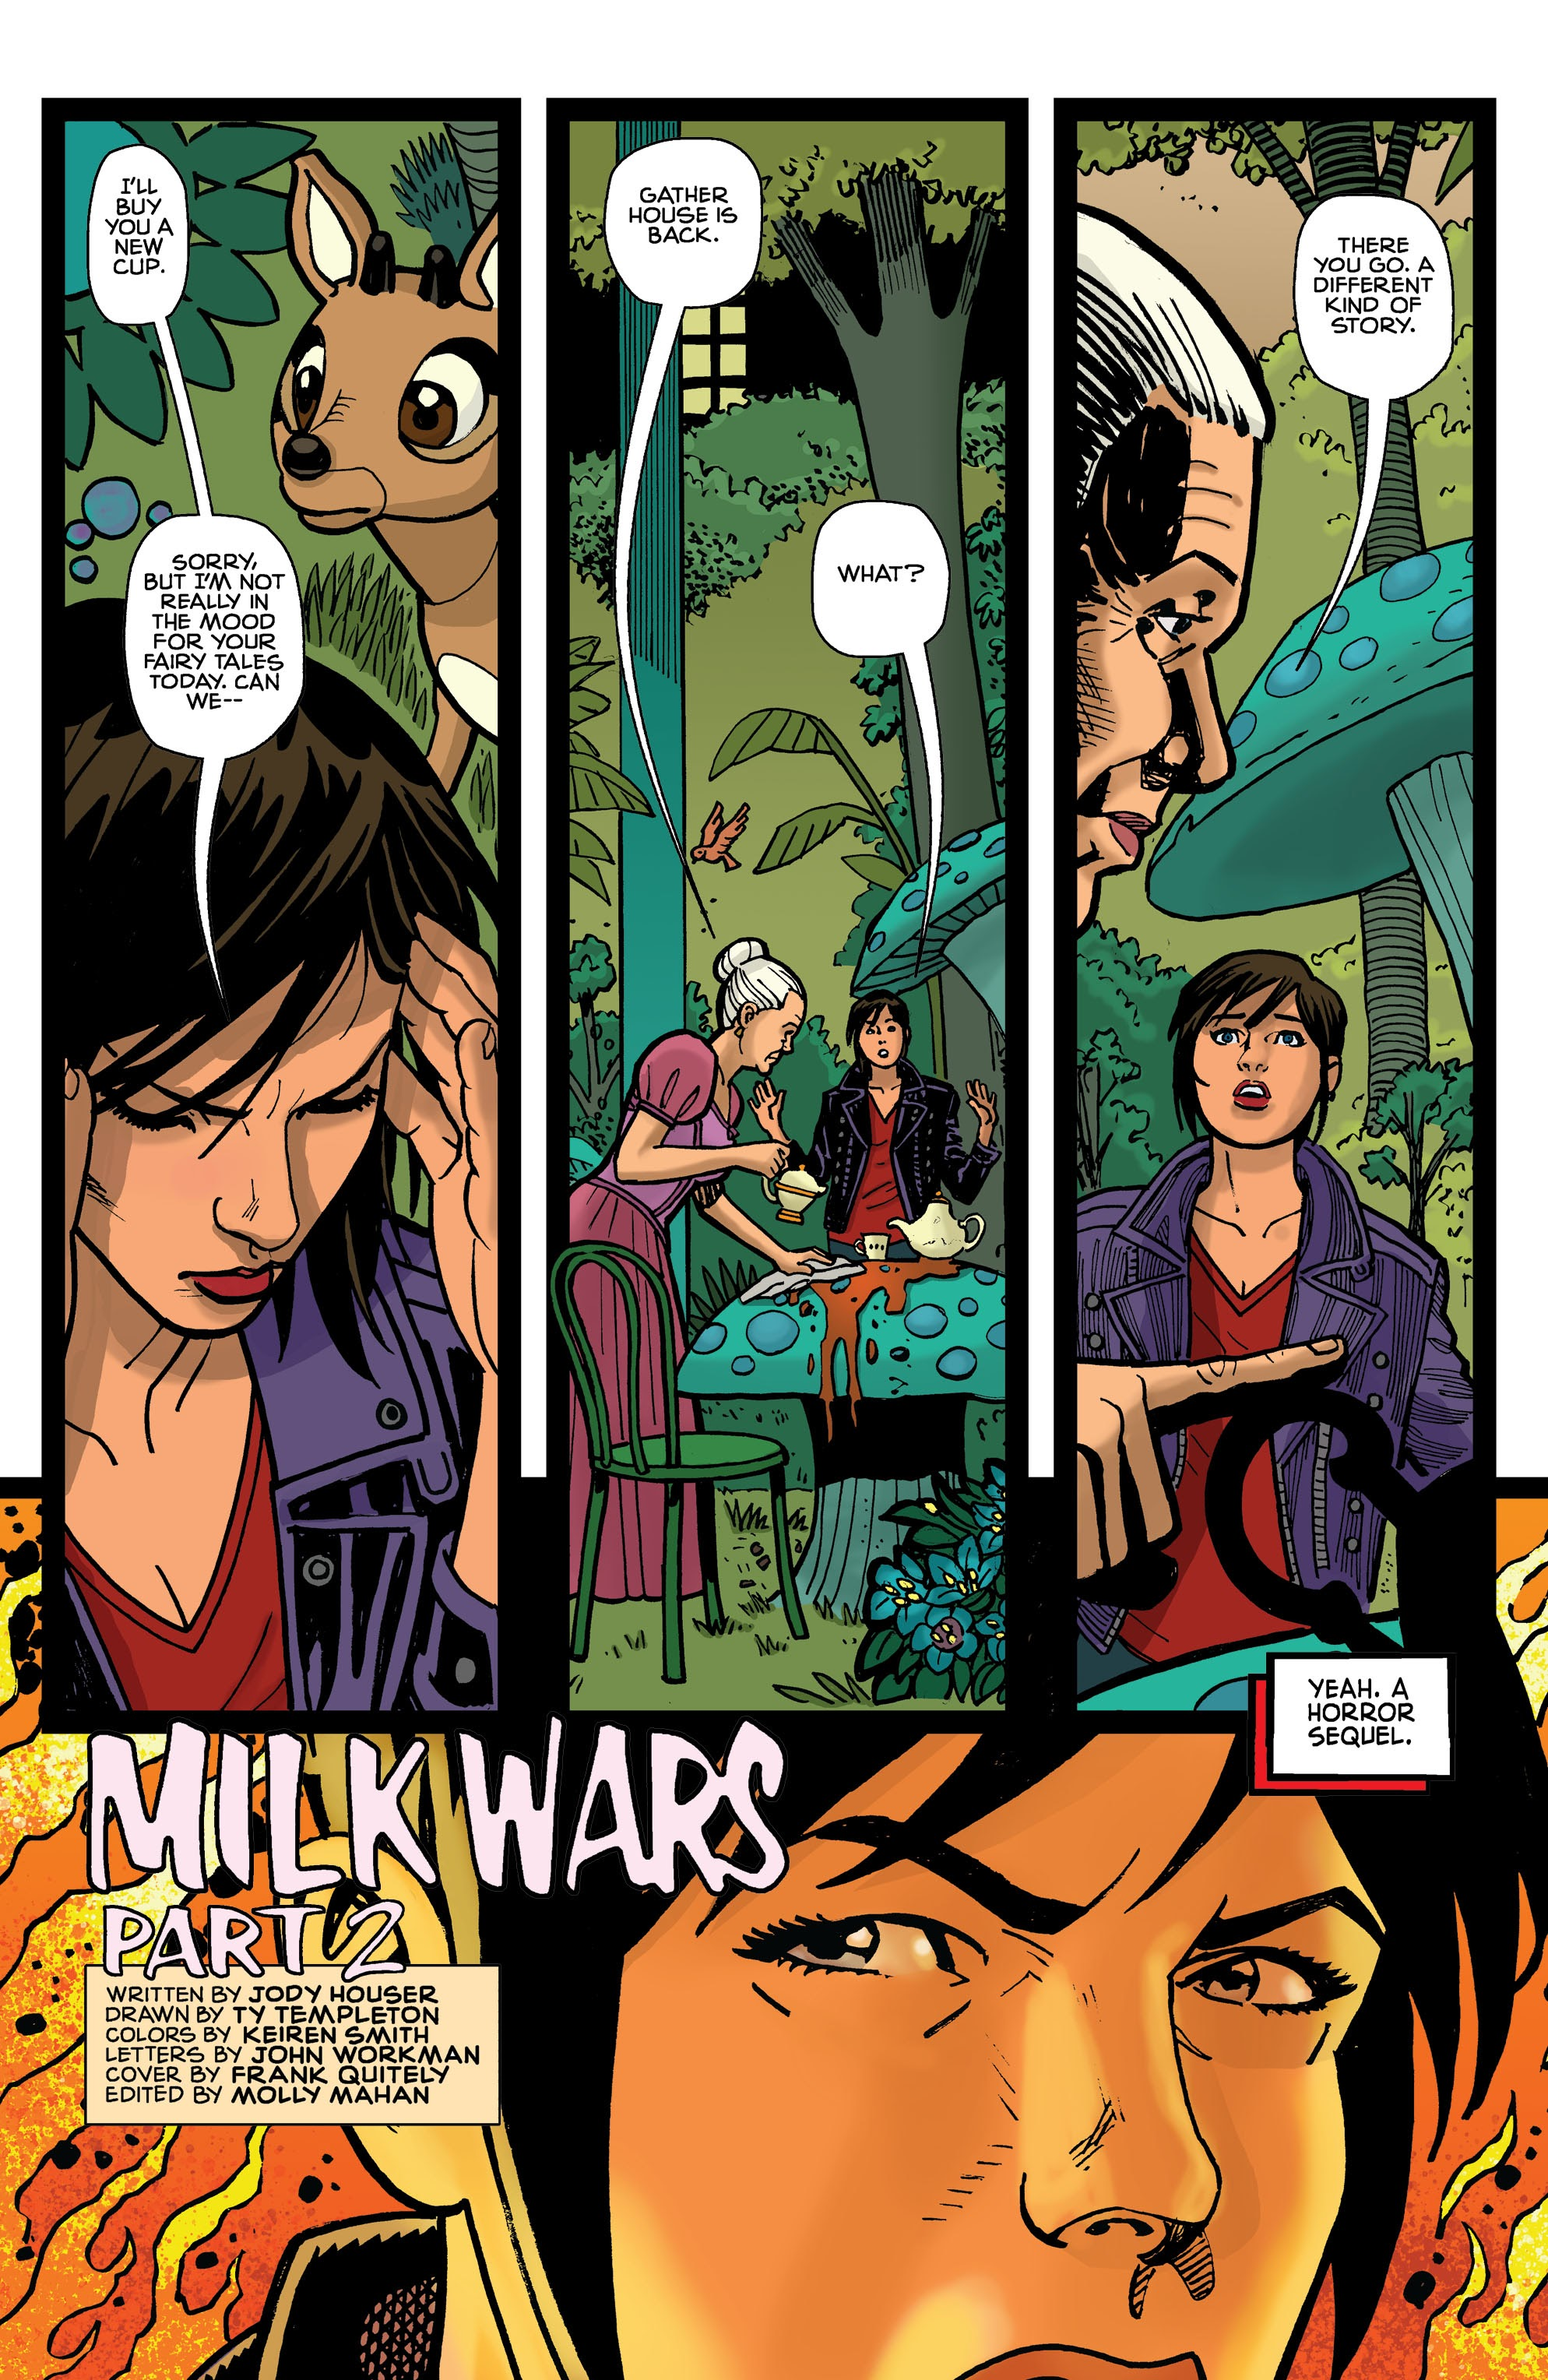 Dc Young Animal Milk Wars Tpb Part 1 Viewcomic Reading Comics Online For Free 2019